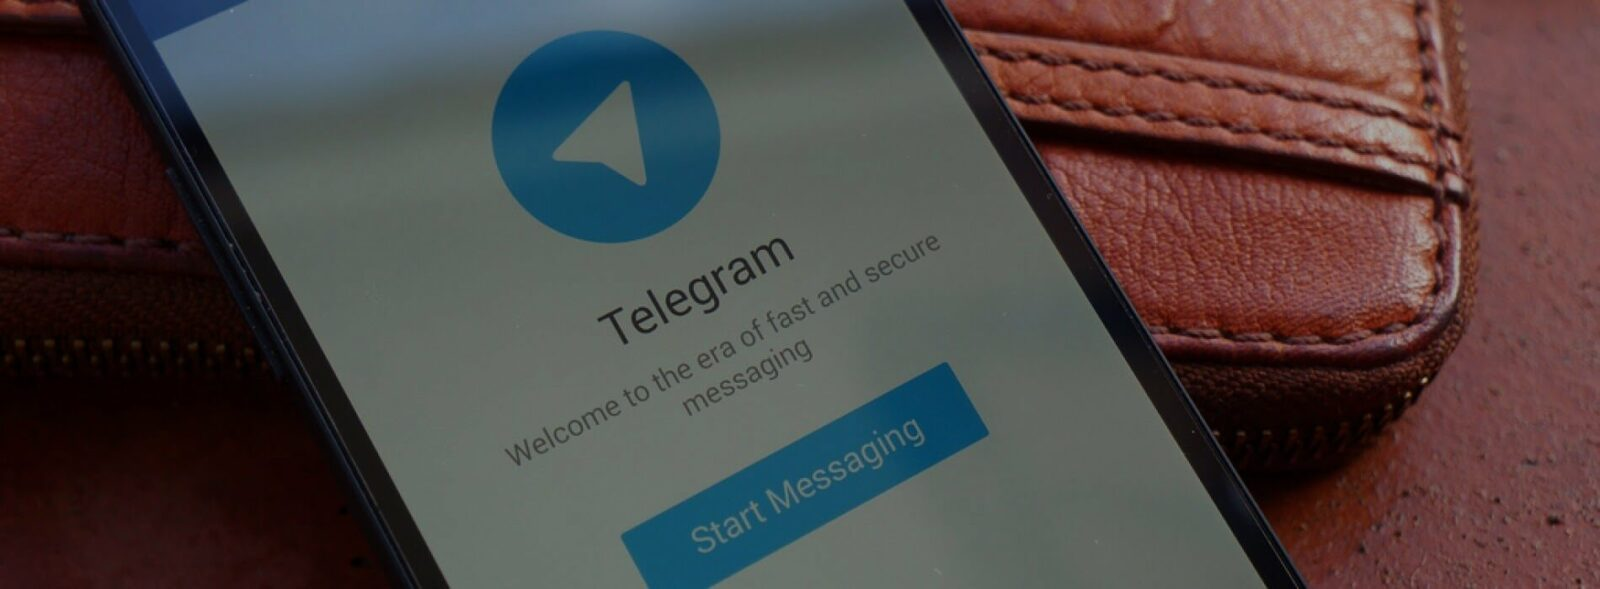 faq-telegram